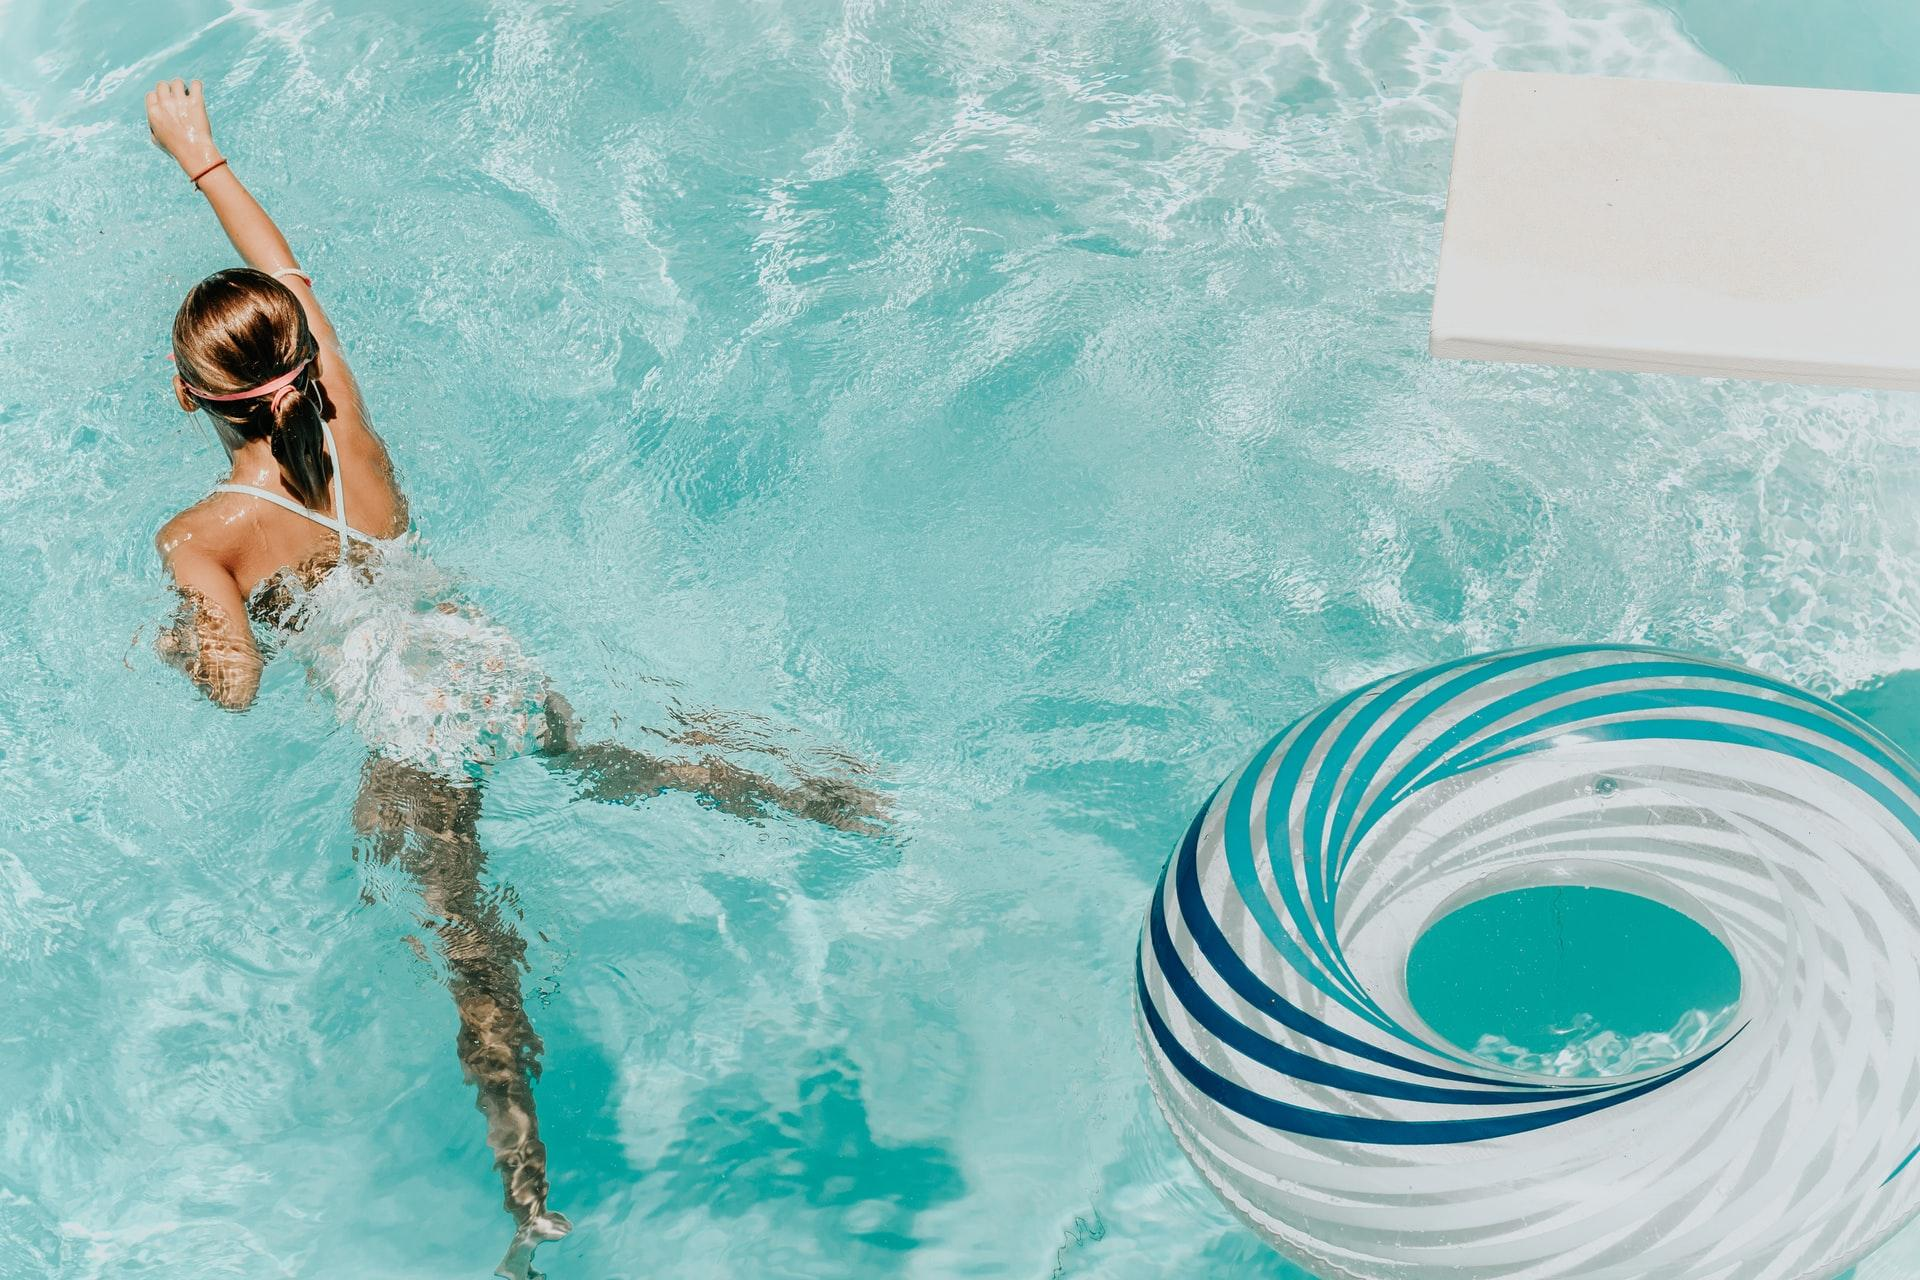 girl wearing swimsuit and swims in swimming pool